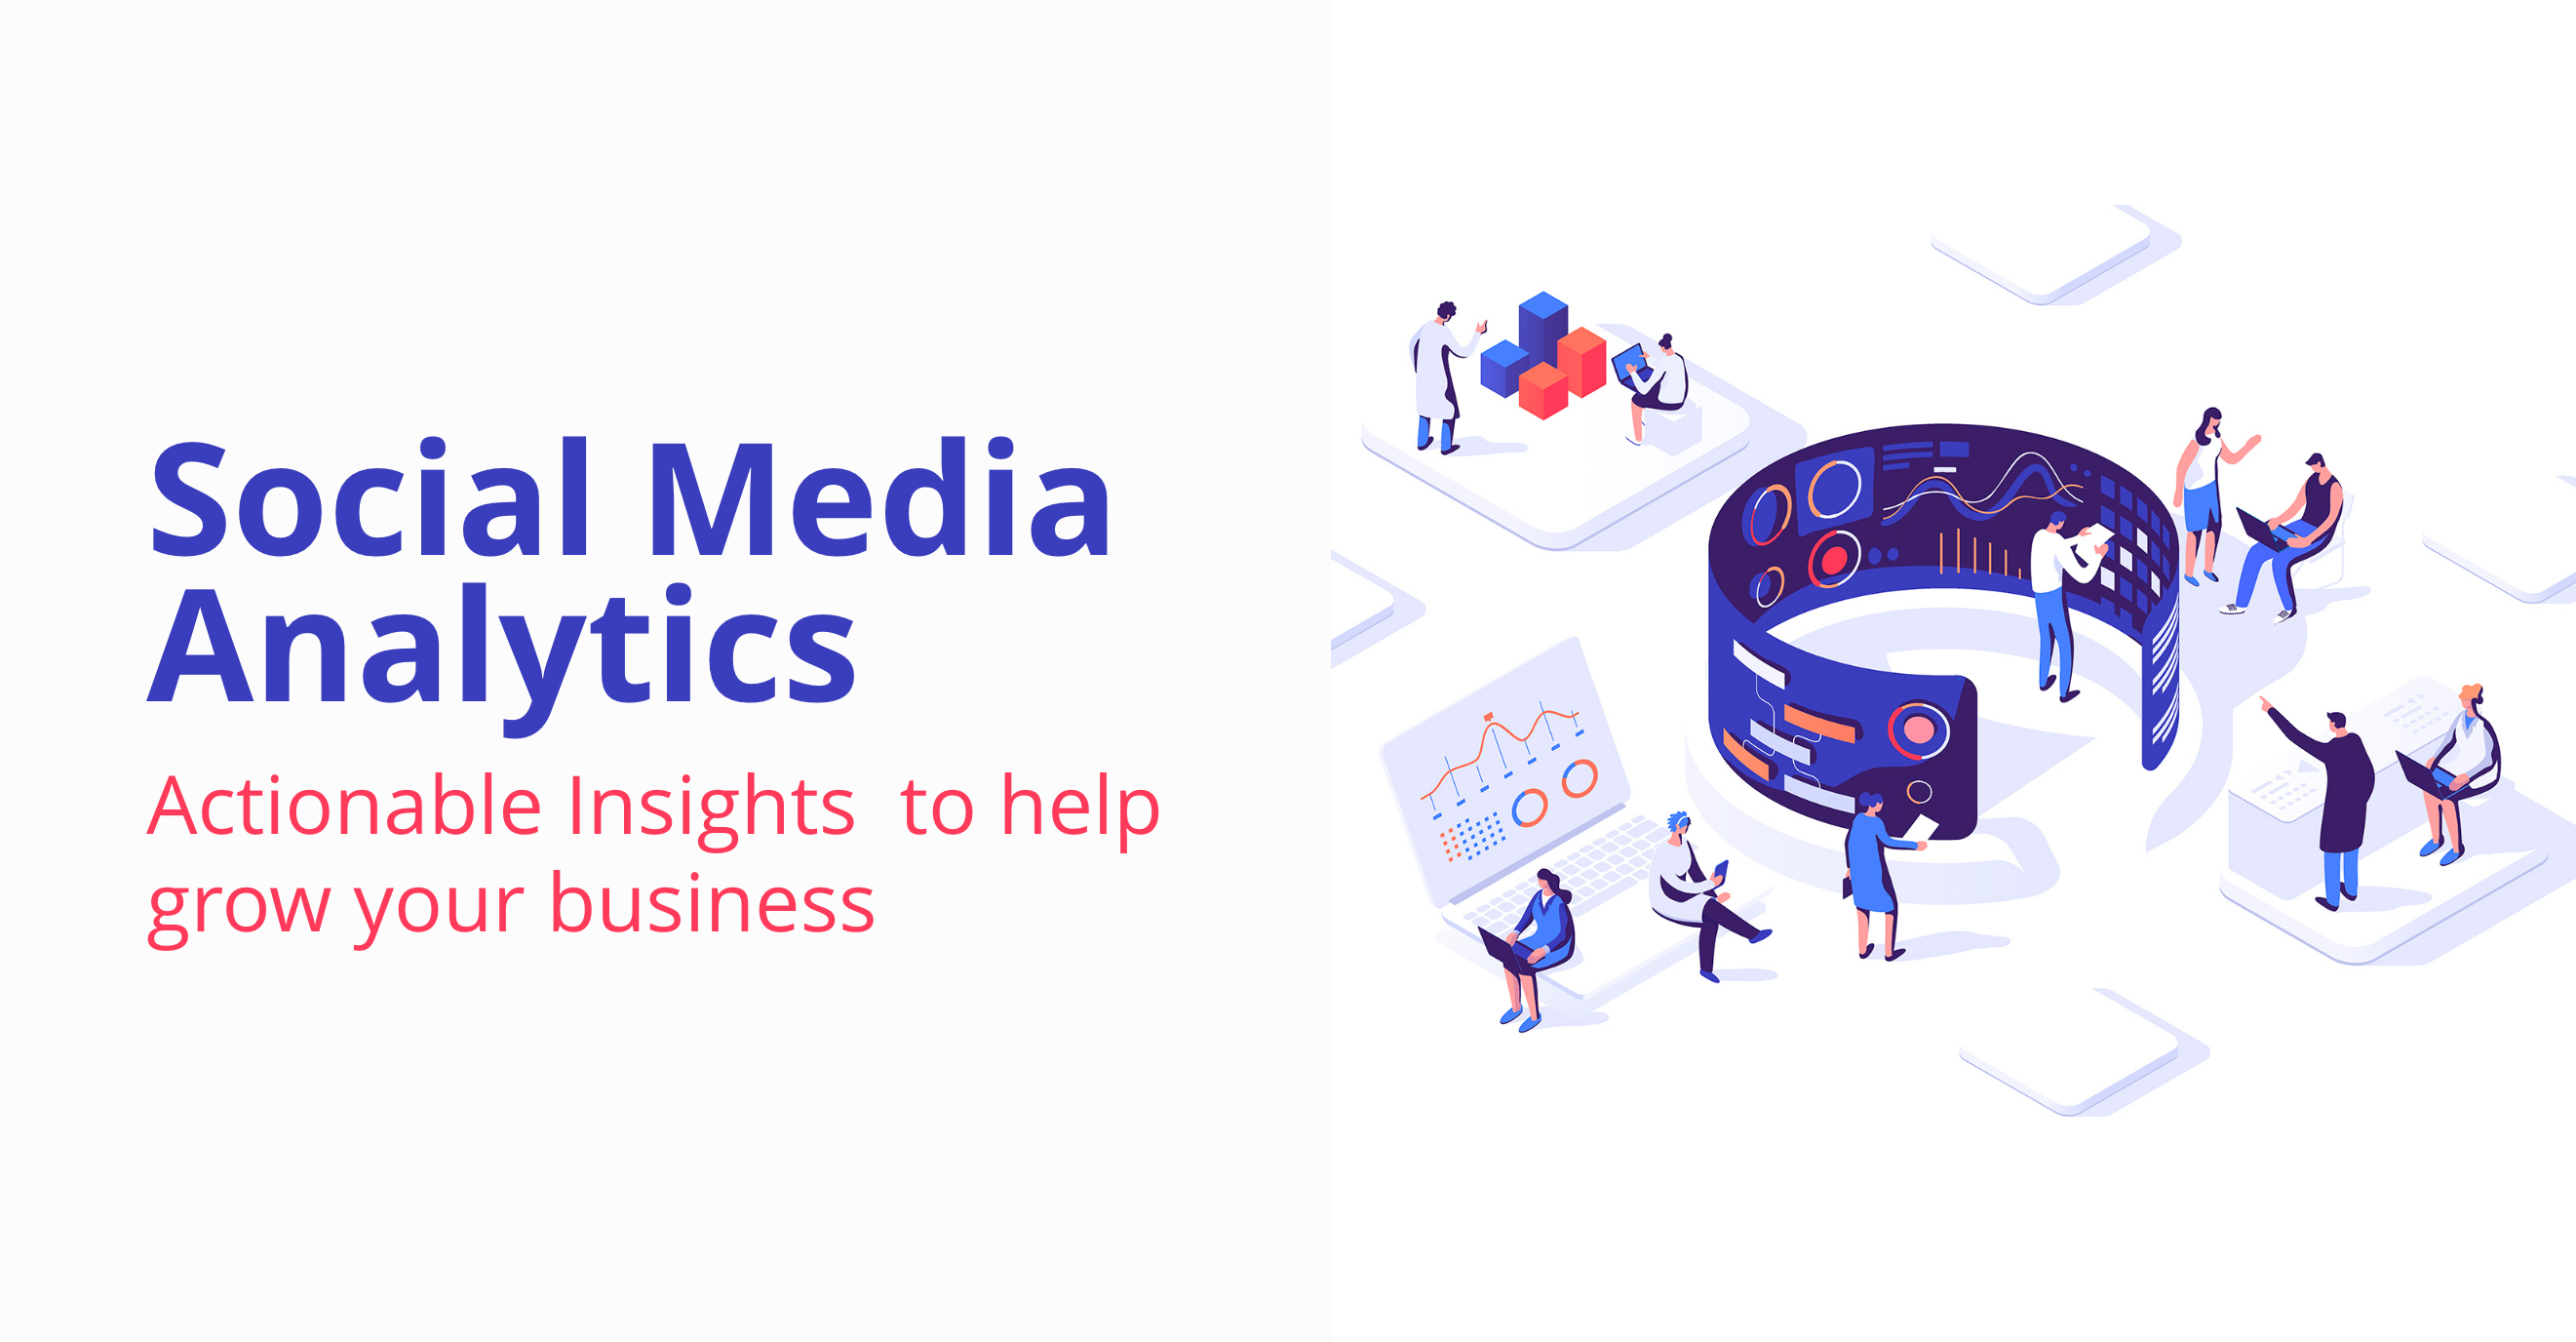 social media analytics - ContentStudio